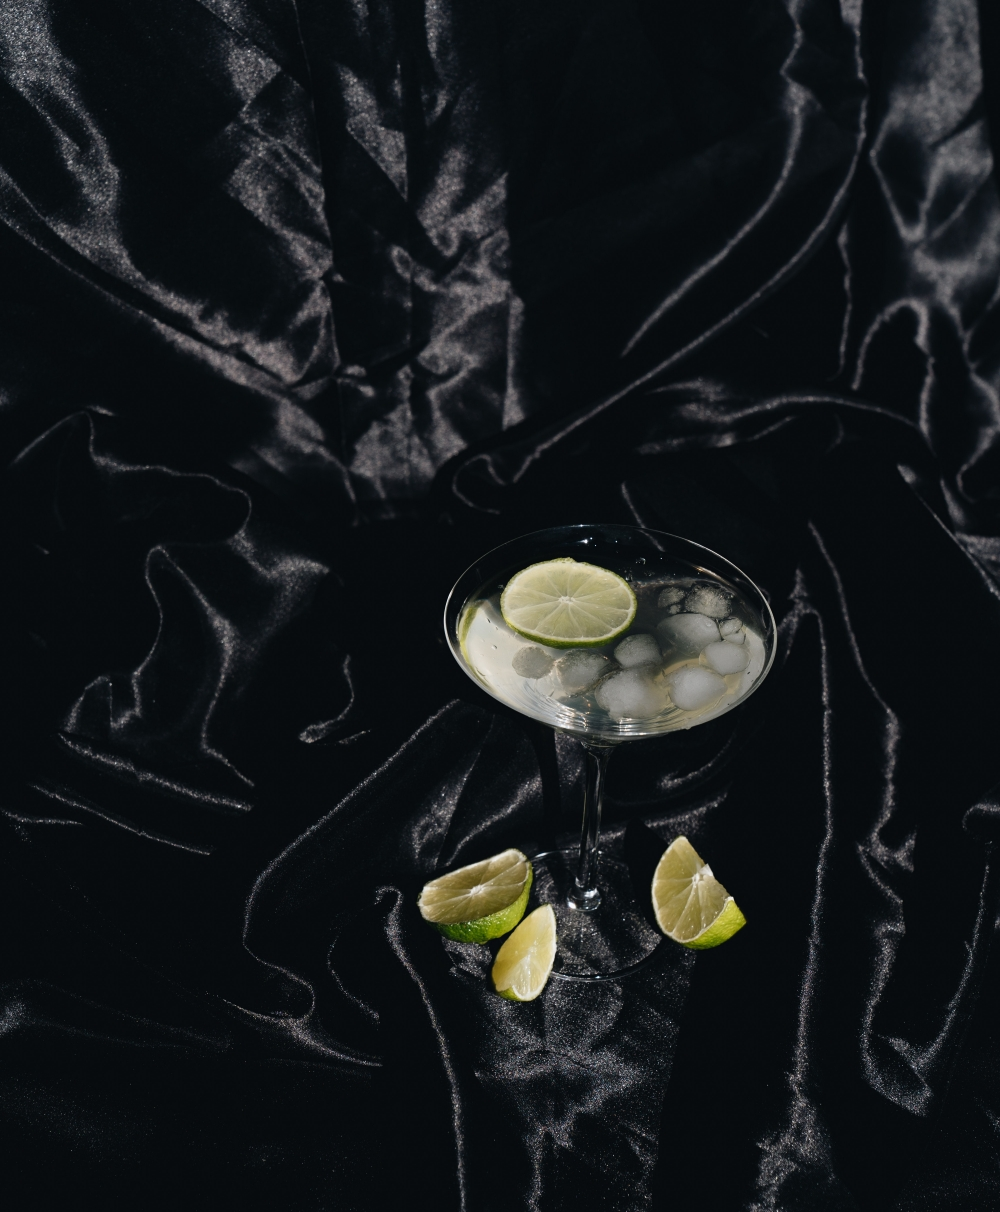 nye-new-years-eve-2020-alone-low-key-at-home-photo-of-cocktail-glass-on-black-silk-fabric